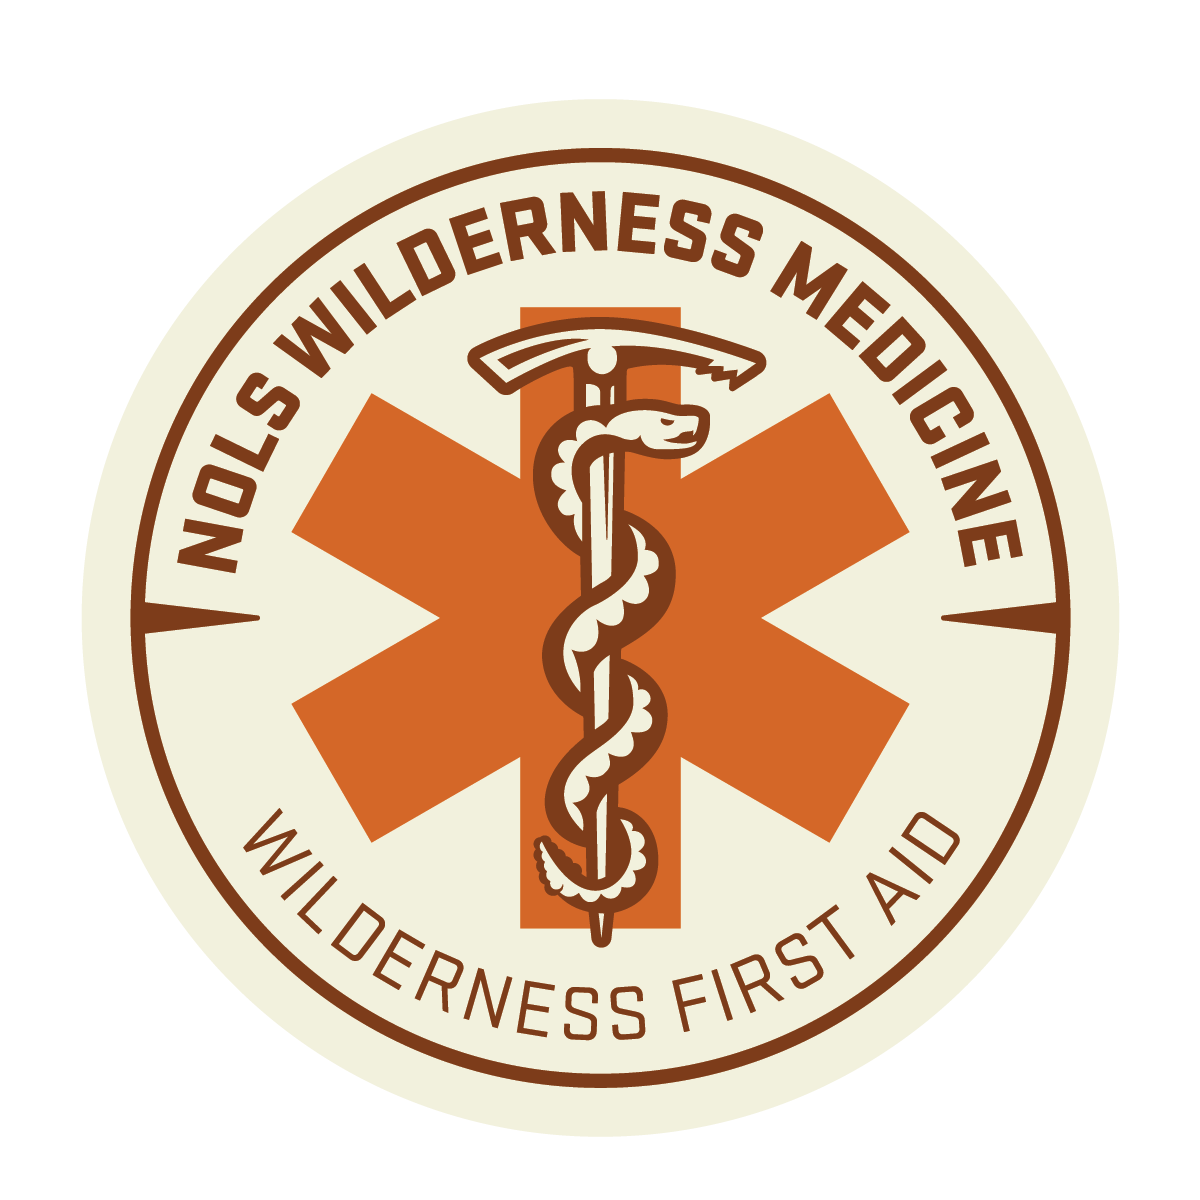 Wilderness First Aid Badge from NOLS Wilderness Medicine